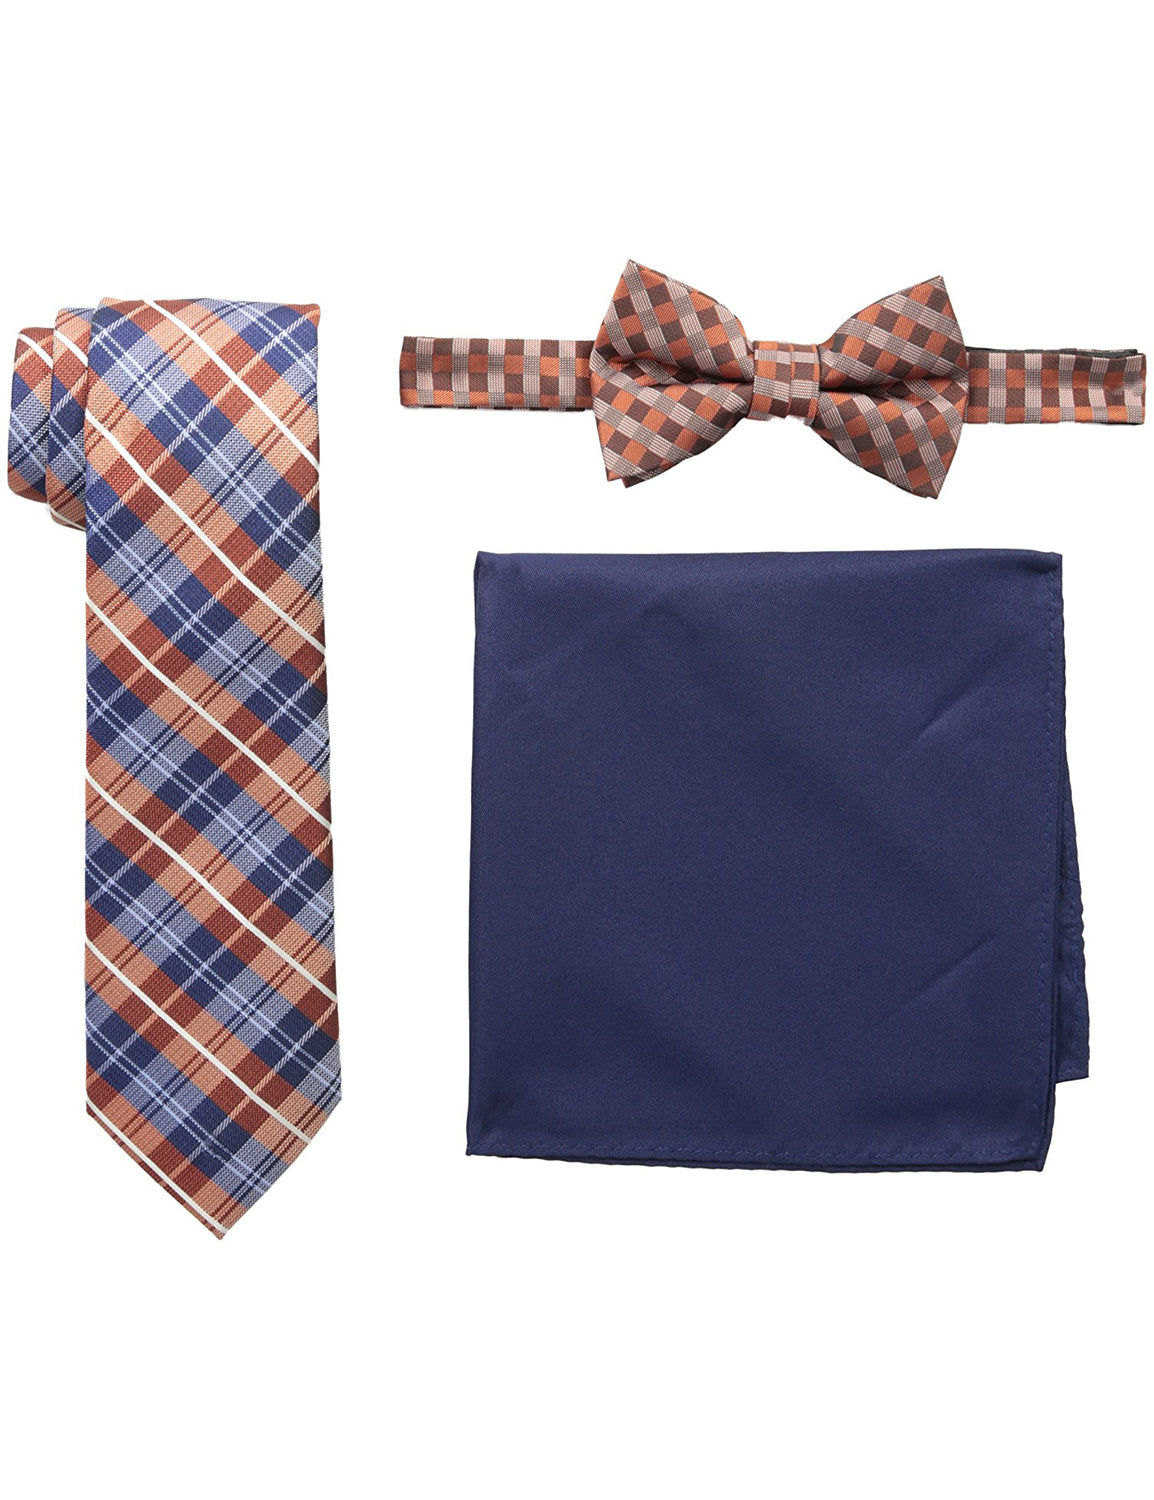 Plaid Neck Tie Gingham Bow Tie and Pocket Square Set